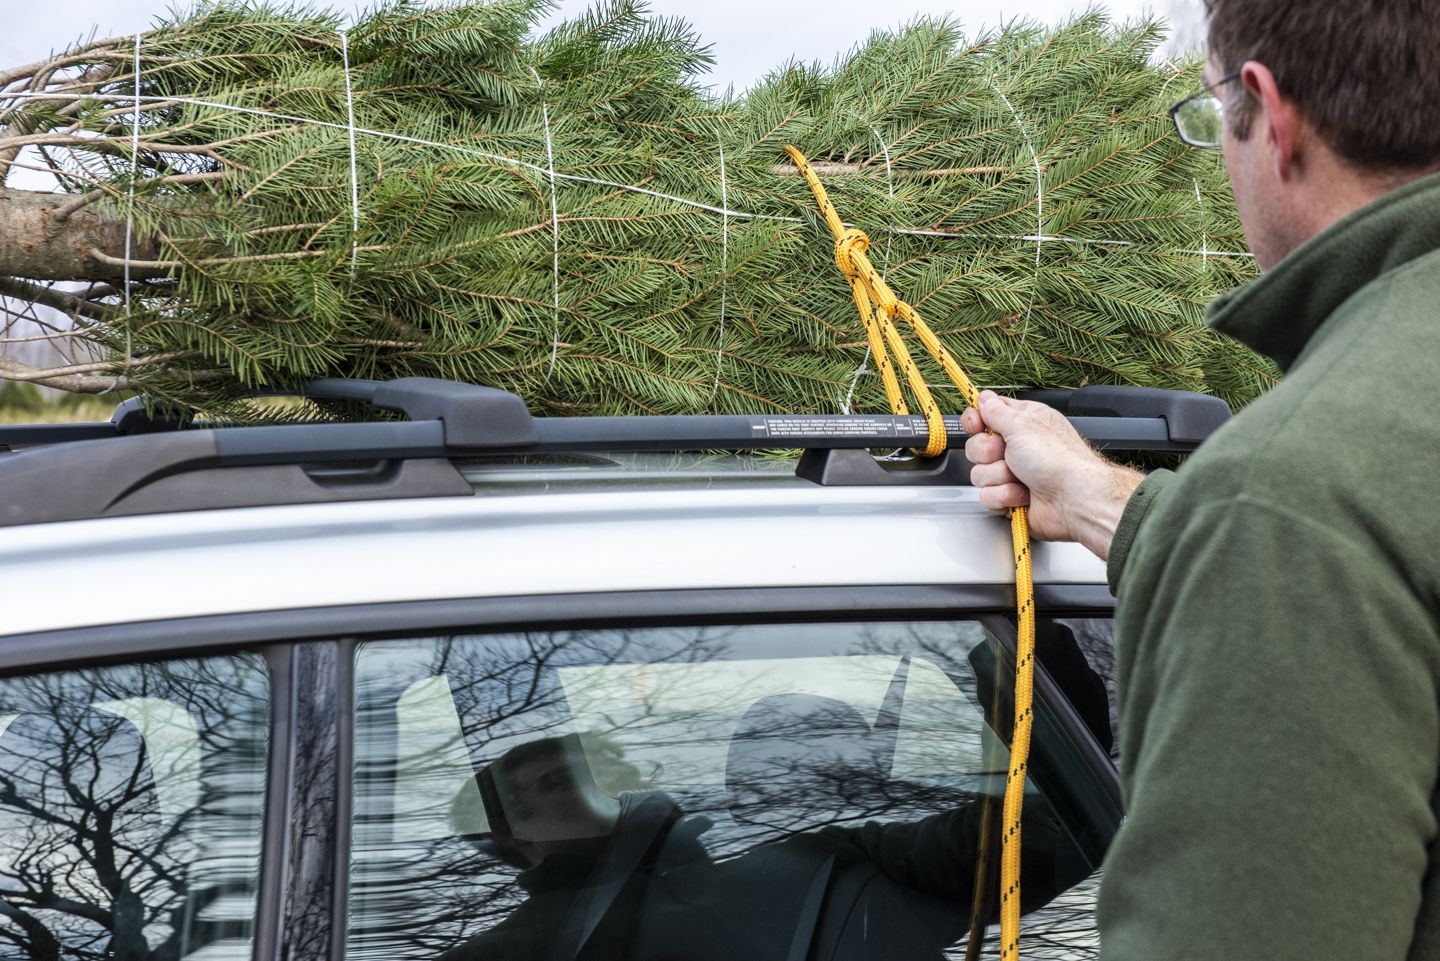 How to Tie a Christmas Tree to a Car | Transport a Christmas